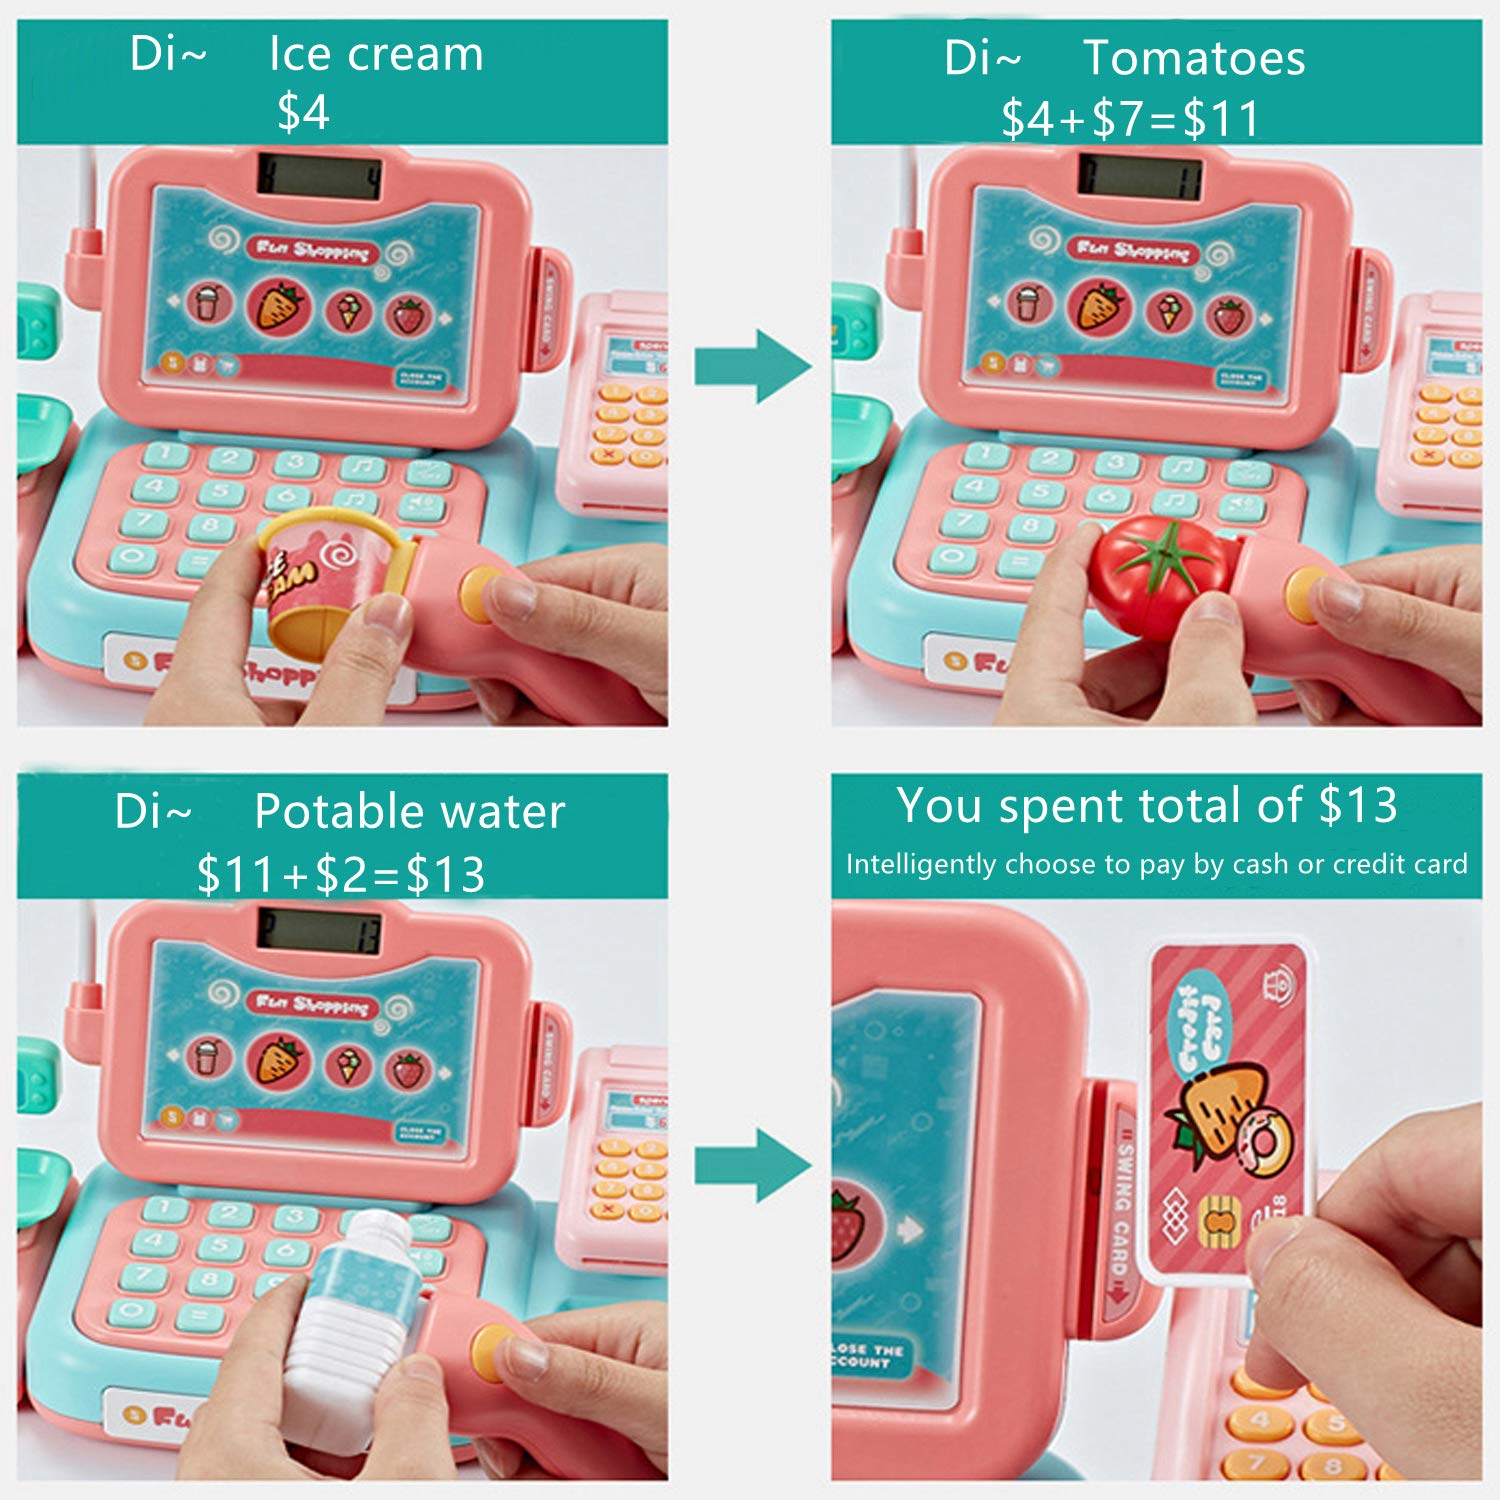 YYoomi Pretend Play Educational Cash Register Toy Classic Counting Toy with Microphone/ Calculator/ Scanner/ Sound/ Music for Kids & Toddlers & Preschoolers by YYoomi (Image #4)